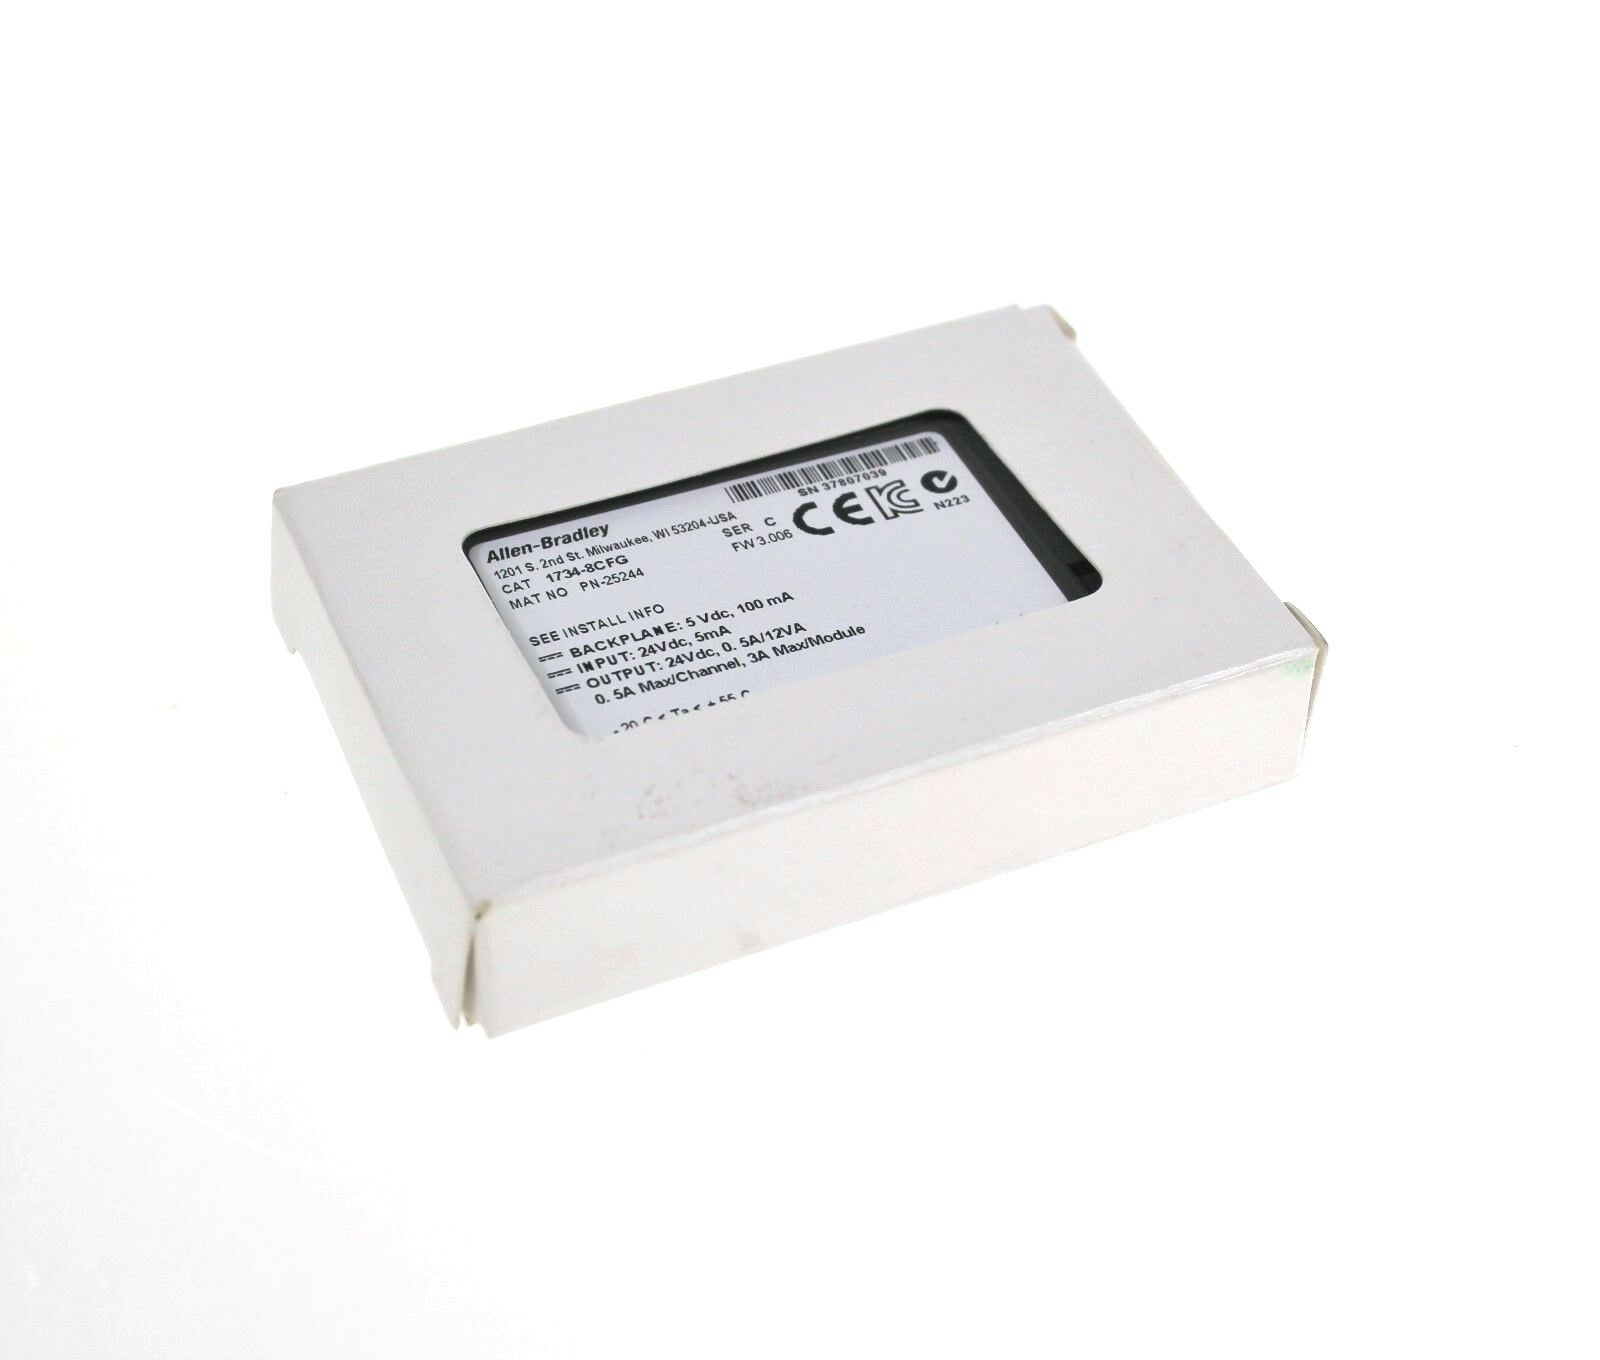 New Allen Bradley 1734-8CFG 8 Point I/O Interface Module Series C F/W 3.006